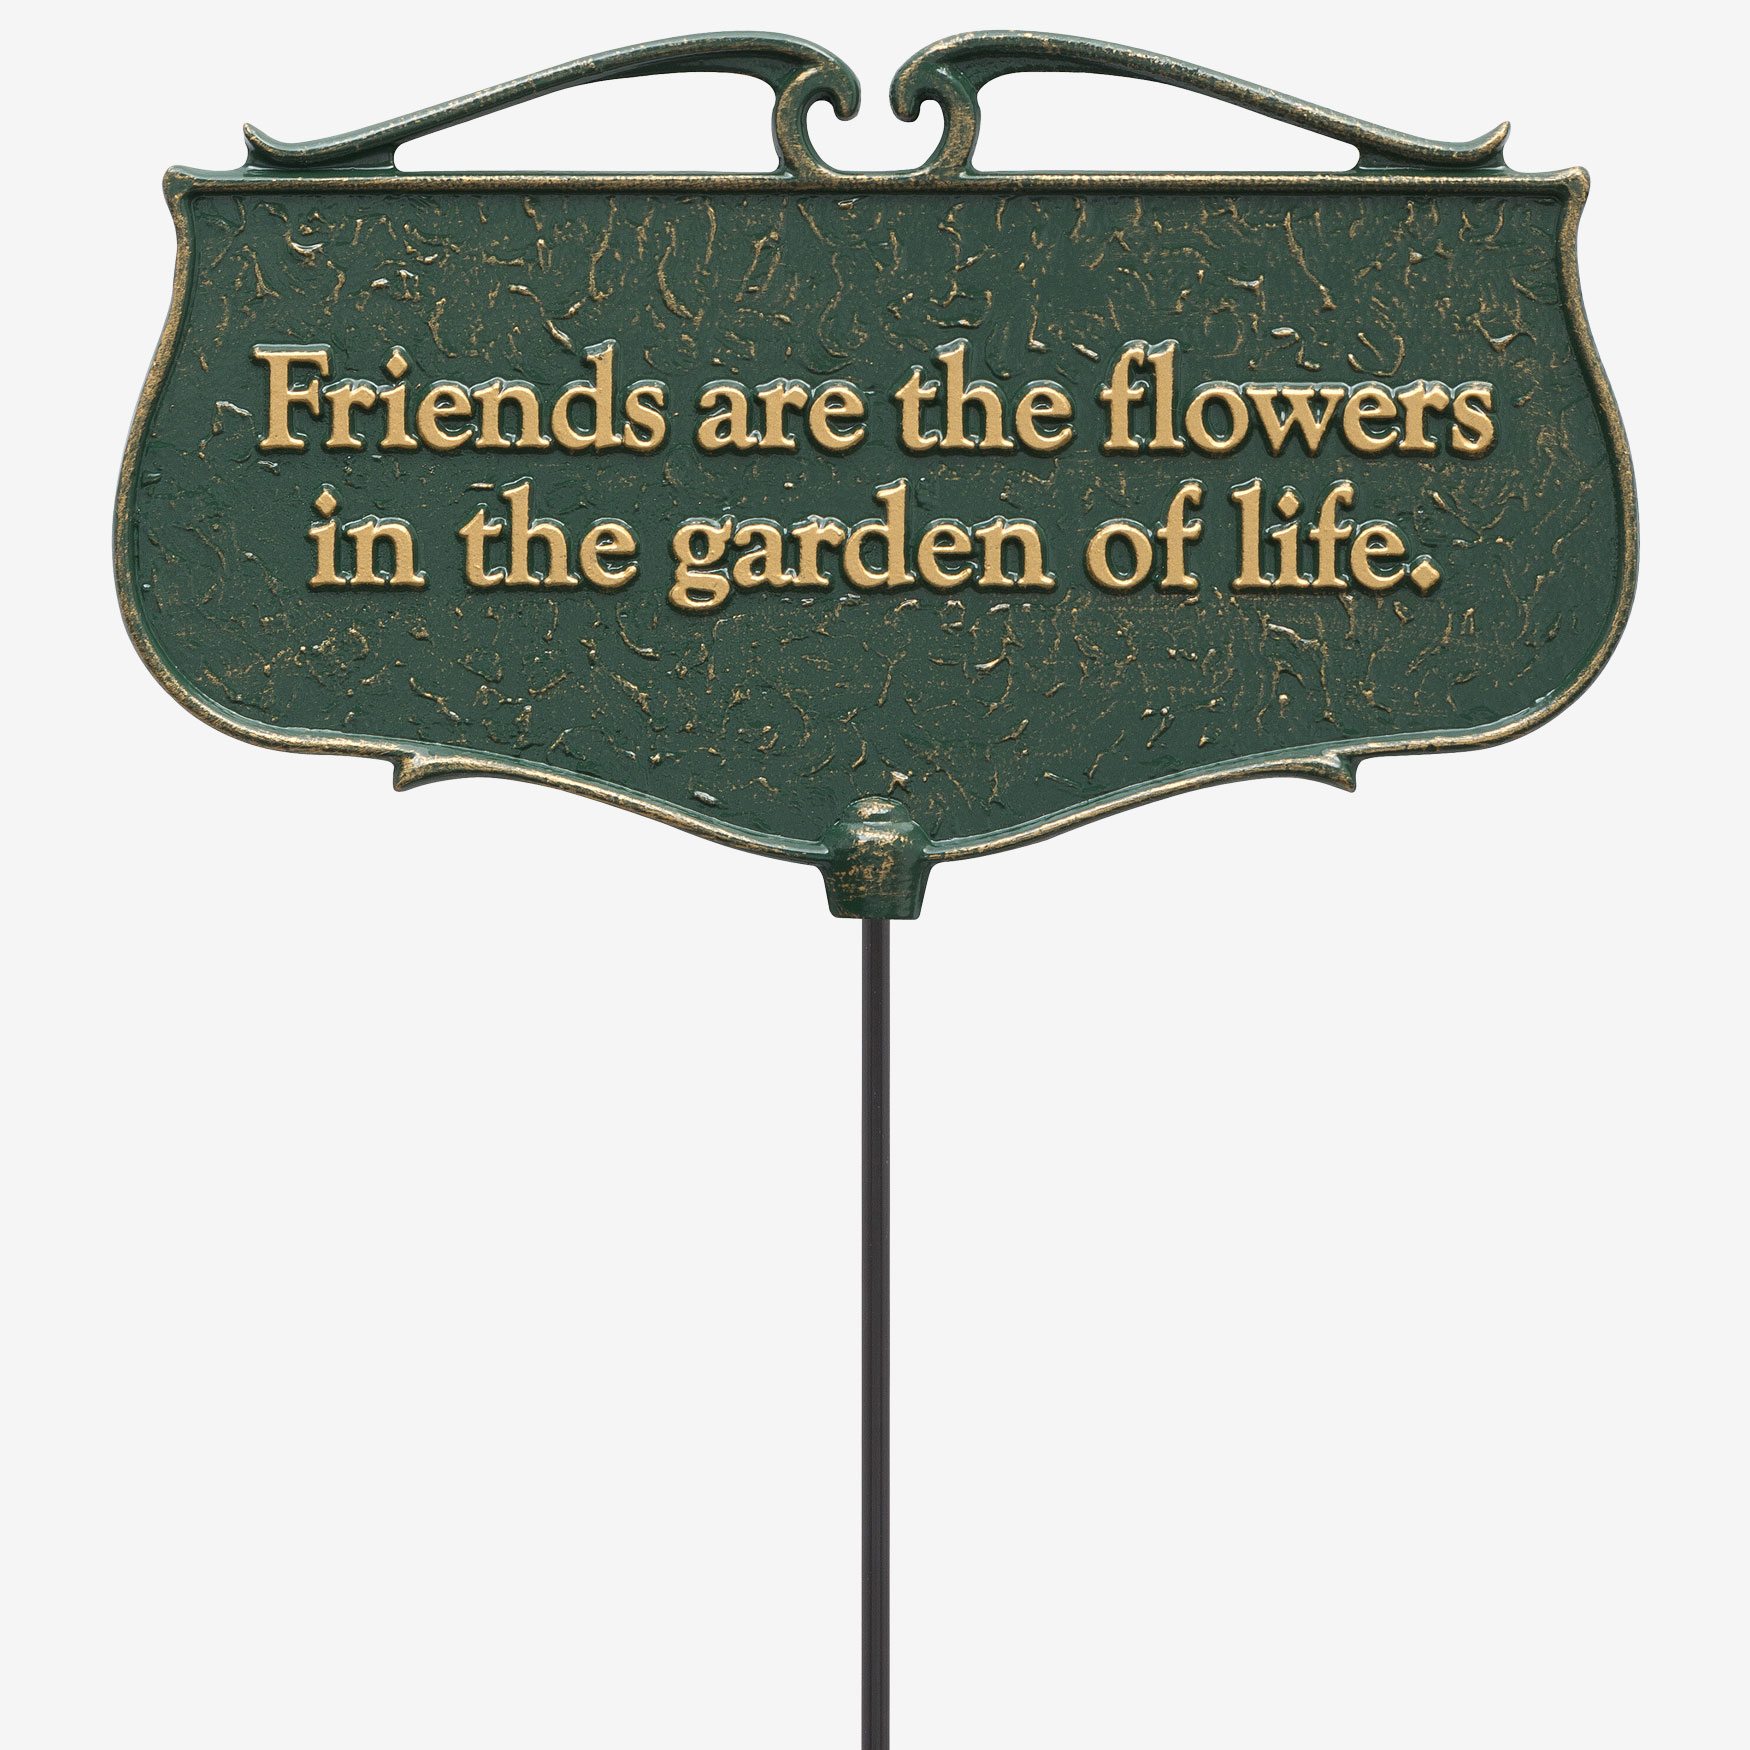 Friends Are The Flowers Garden Poem Sign, GREEN GOLD